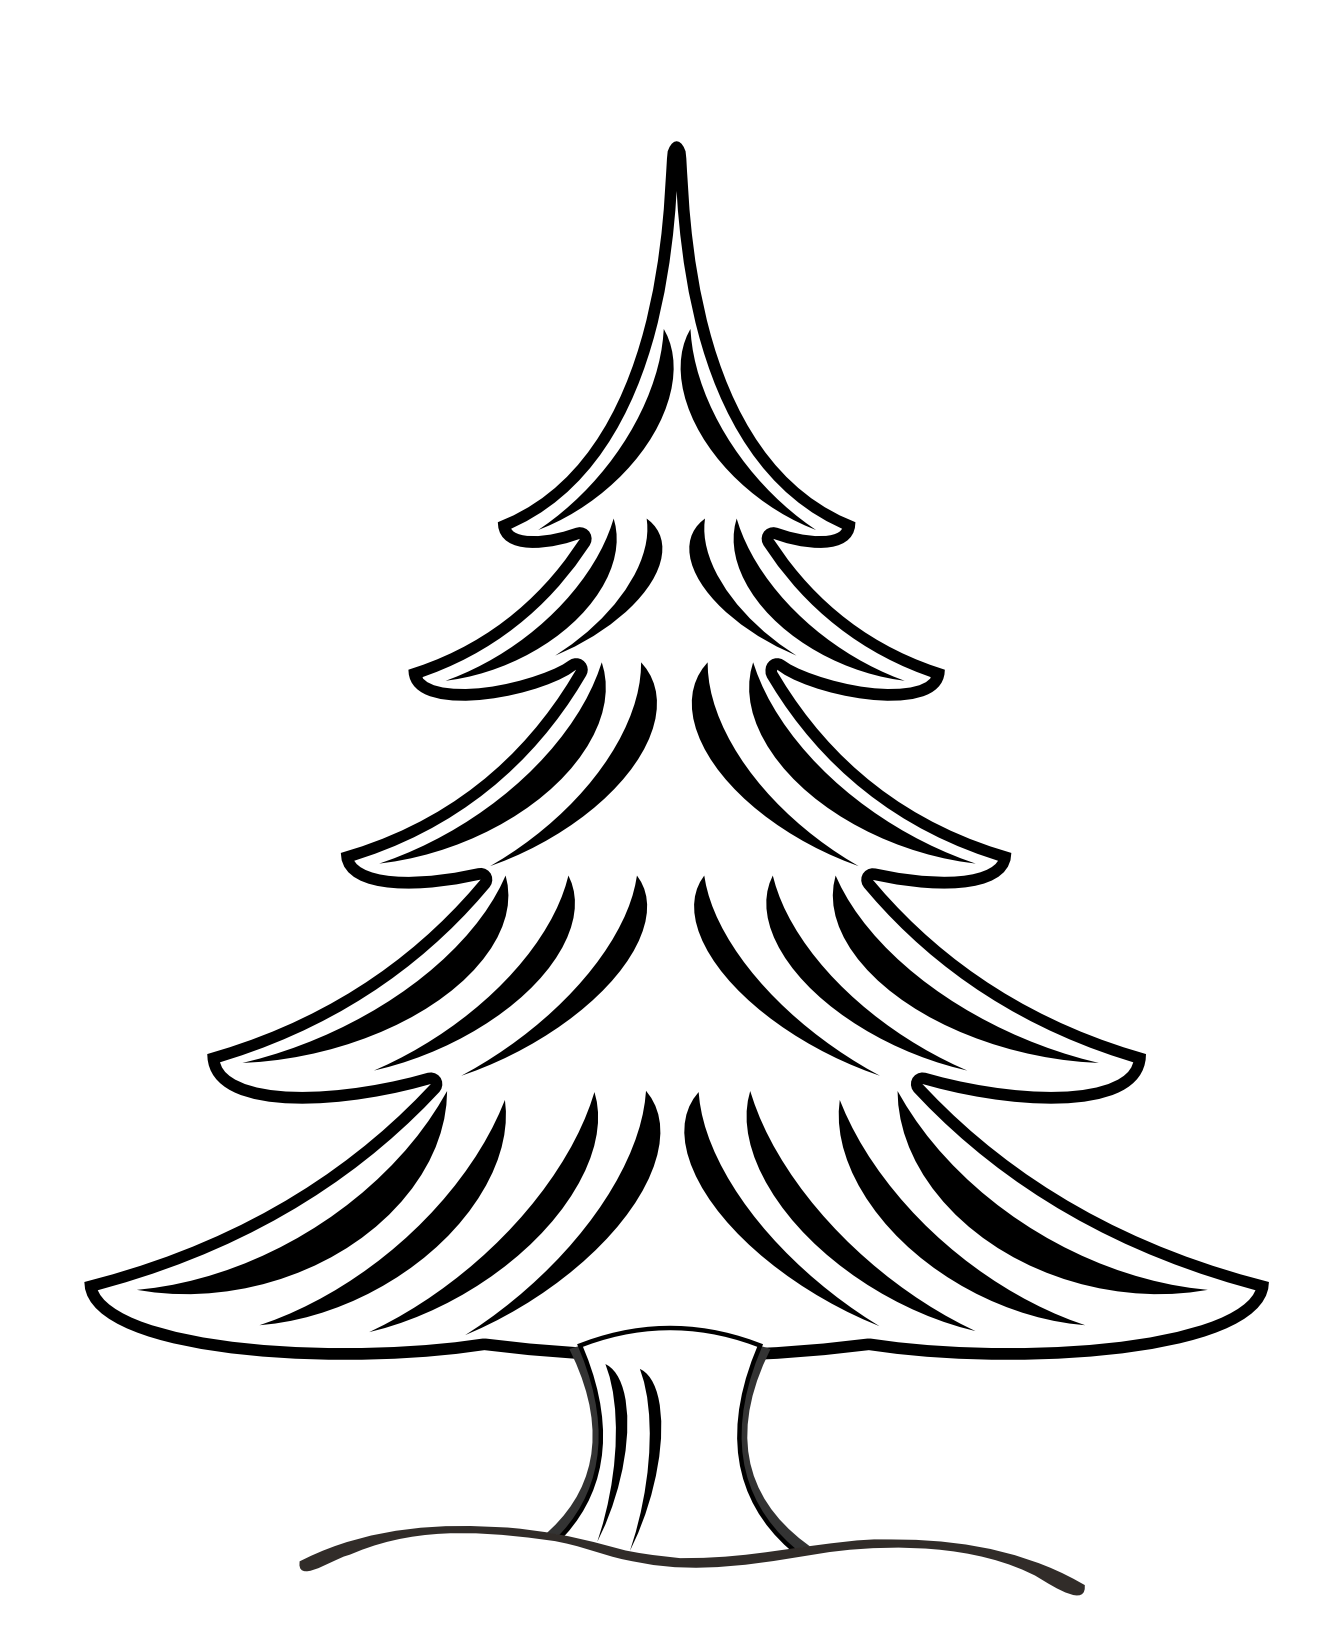 Christmas tree black clipart vector library library Tree Clipart Black And White | Clipart Panda - Free Clipart Images vector library library